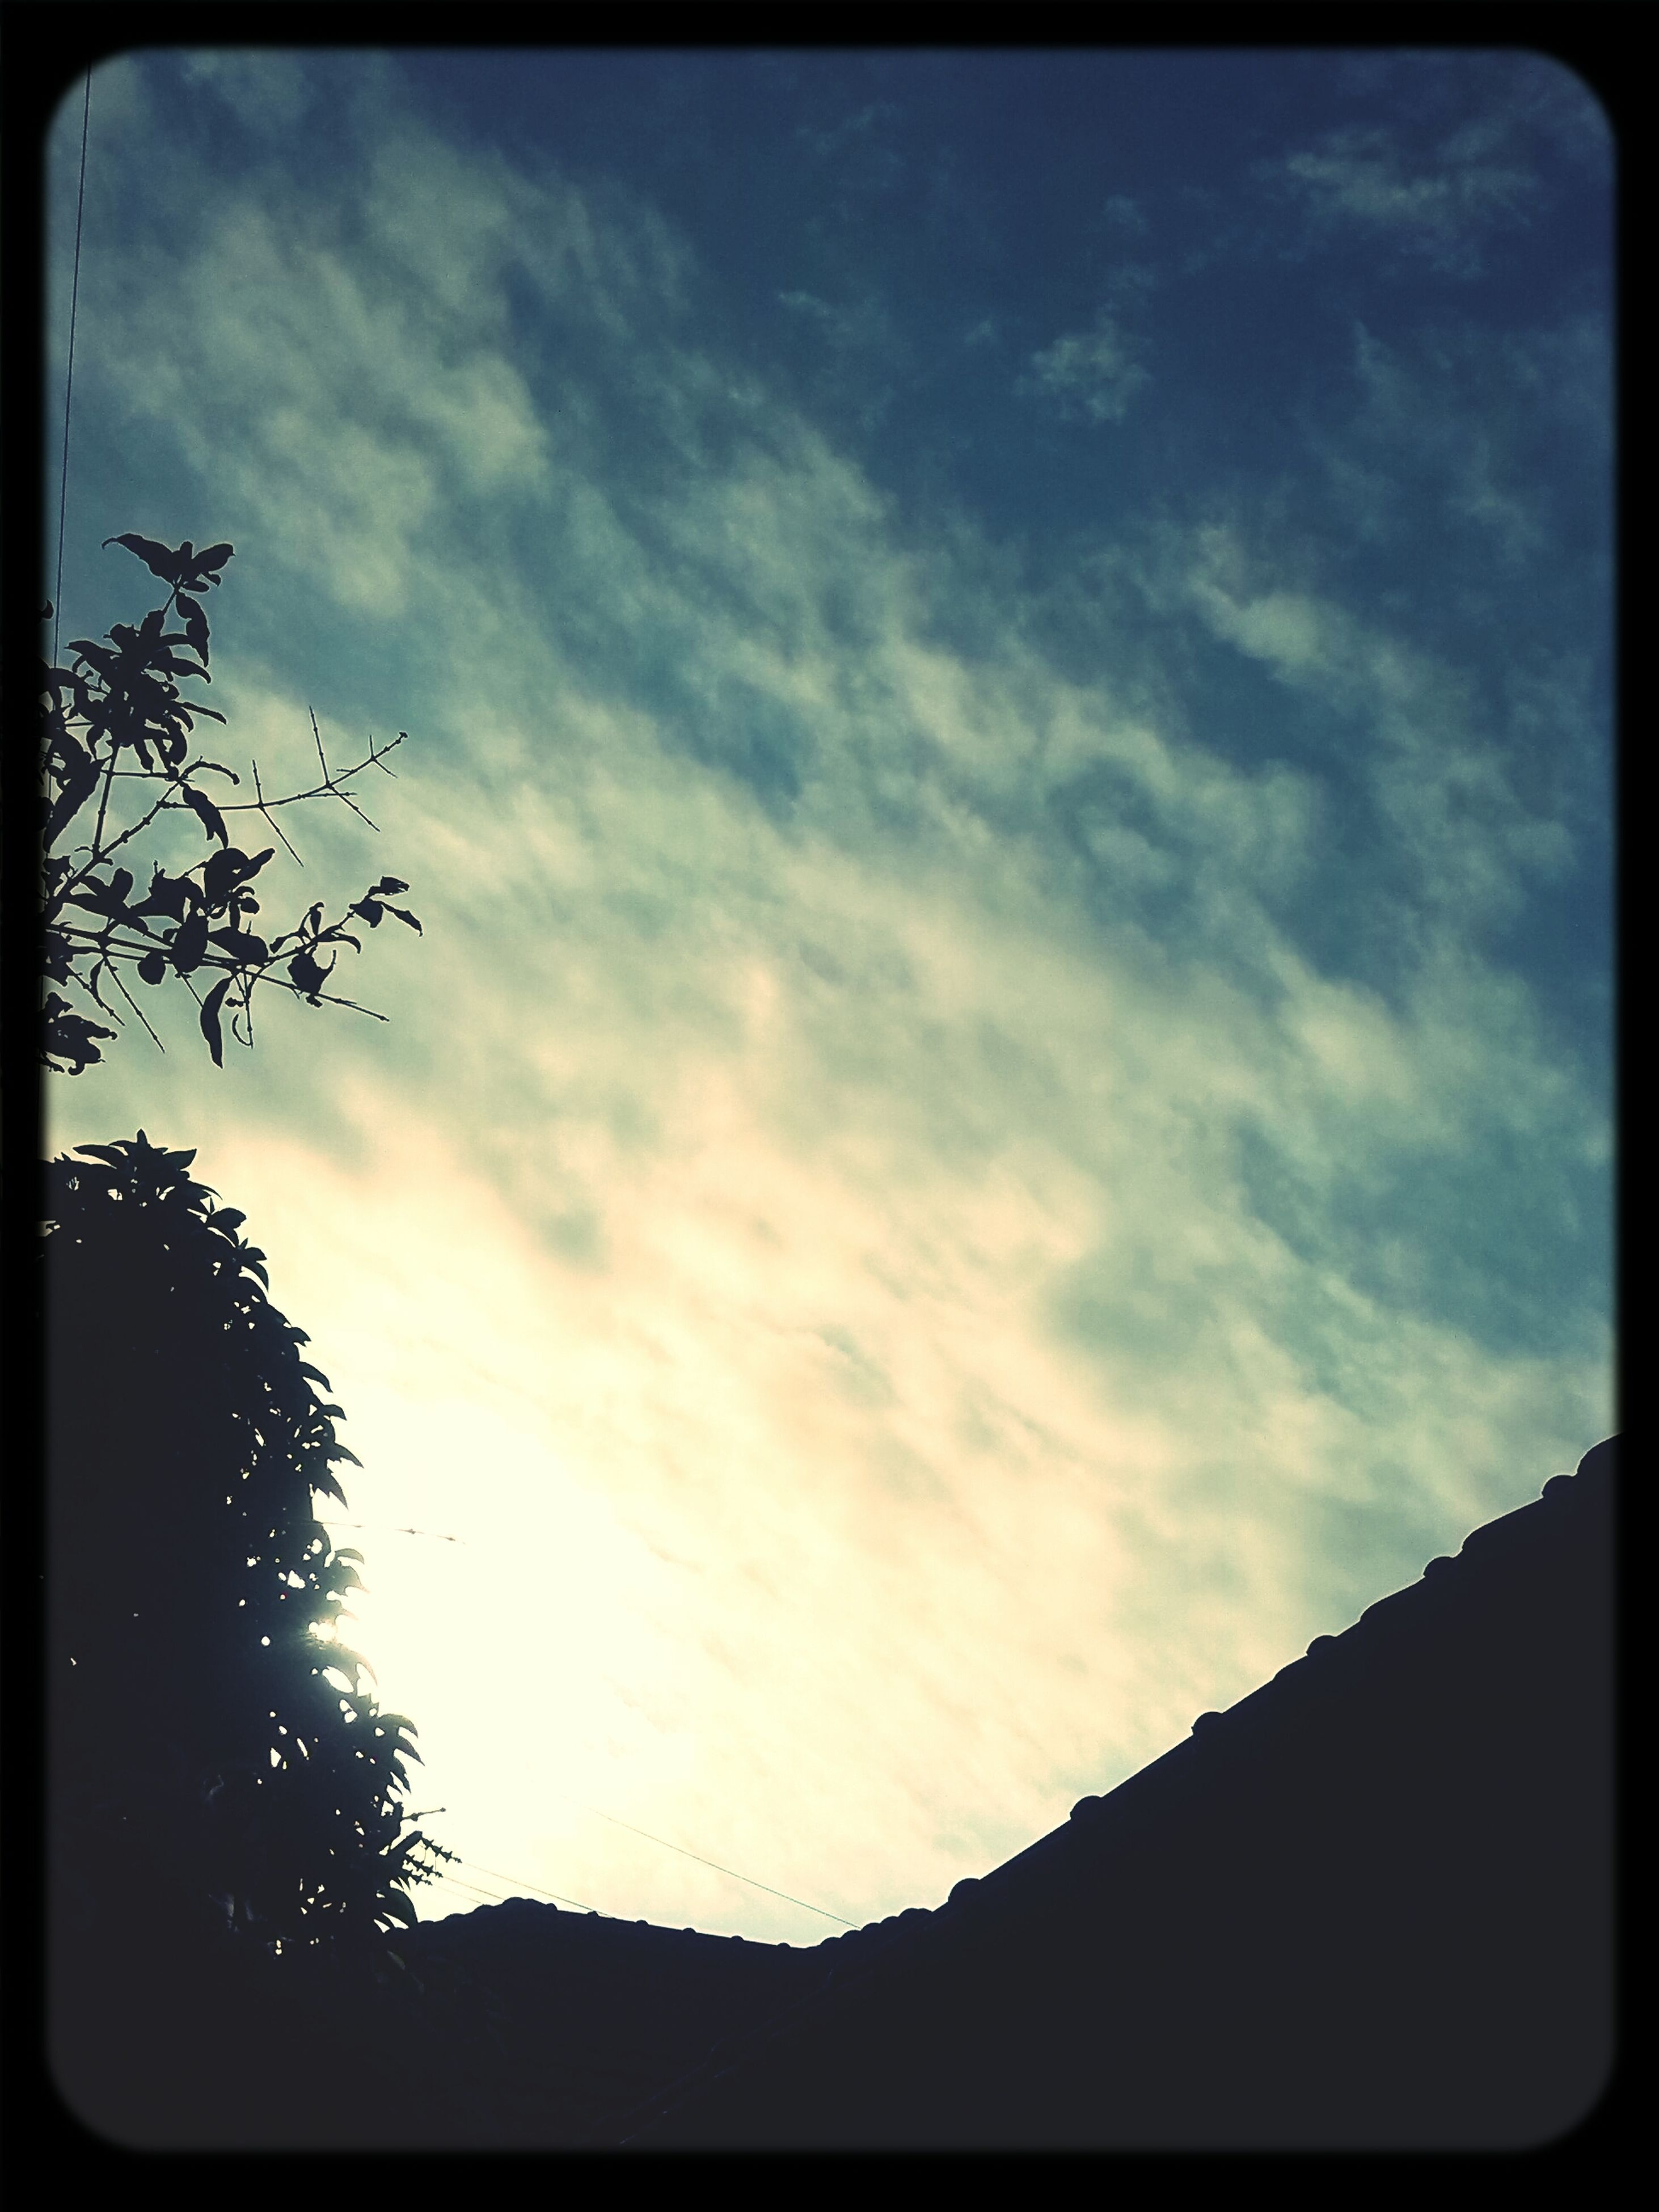 sky, transfer print, silhouette, low angle view, cloud - sky, tree, auto post production filter, cloudy, cloud, tranquility, tranquil scene, beauty in nature, nature, scenics, outdoors, dusk, no people, sunset, bare tree, landscape